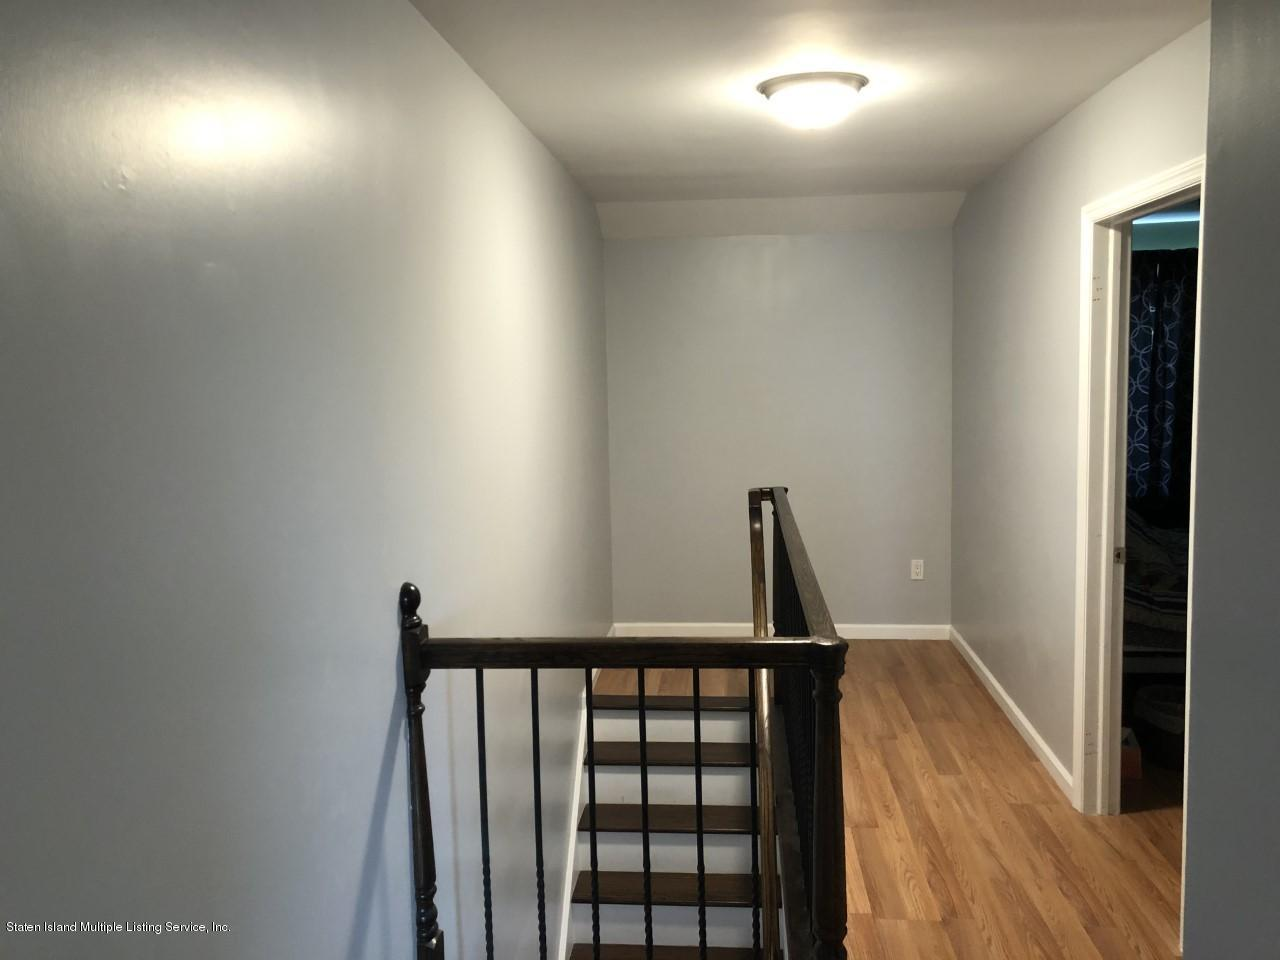 71 Mosel Avenue,Staten Island,New York,10304,United States,3 Bedrooms Bedrooms,6 Rooms Rooms,3 BathroomsBathrooms,Residential,Mosel,1134283